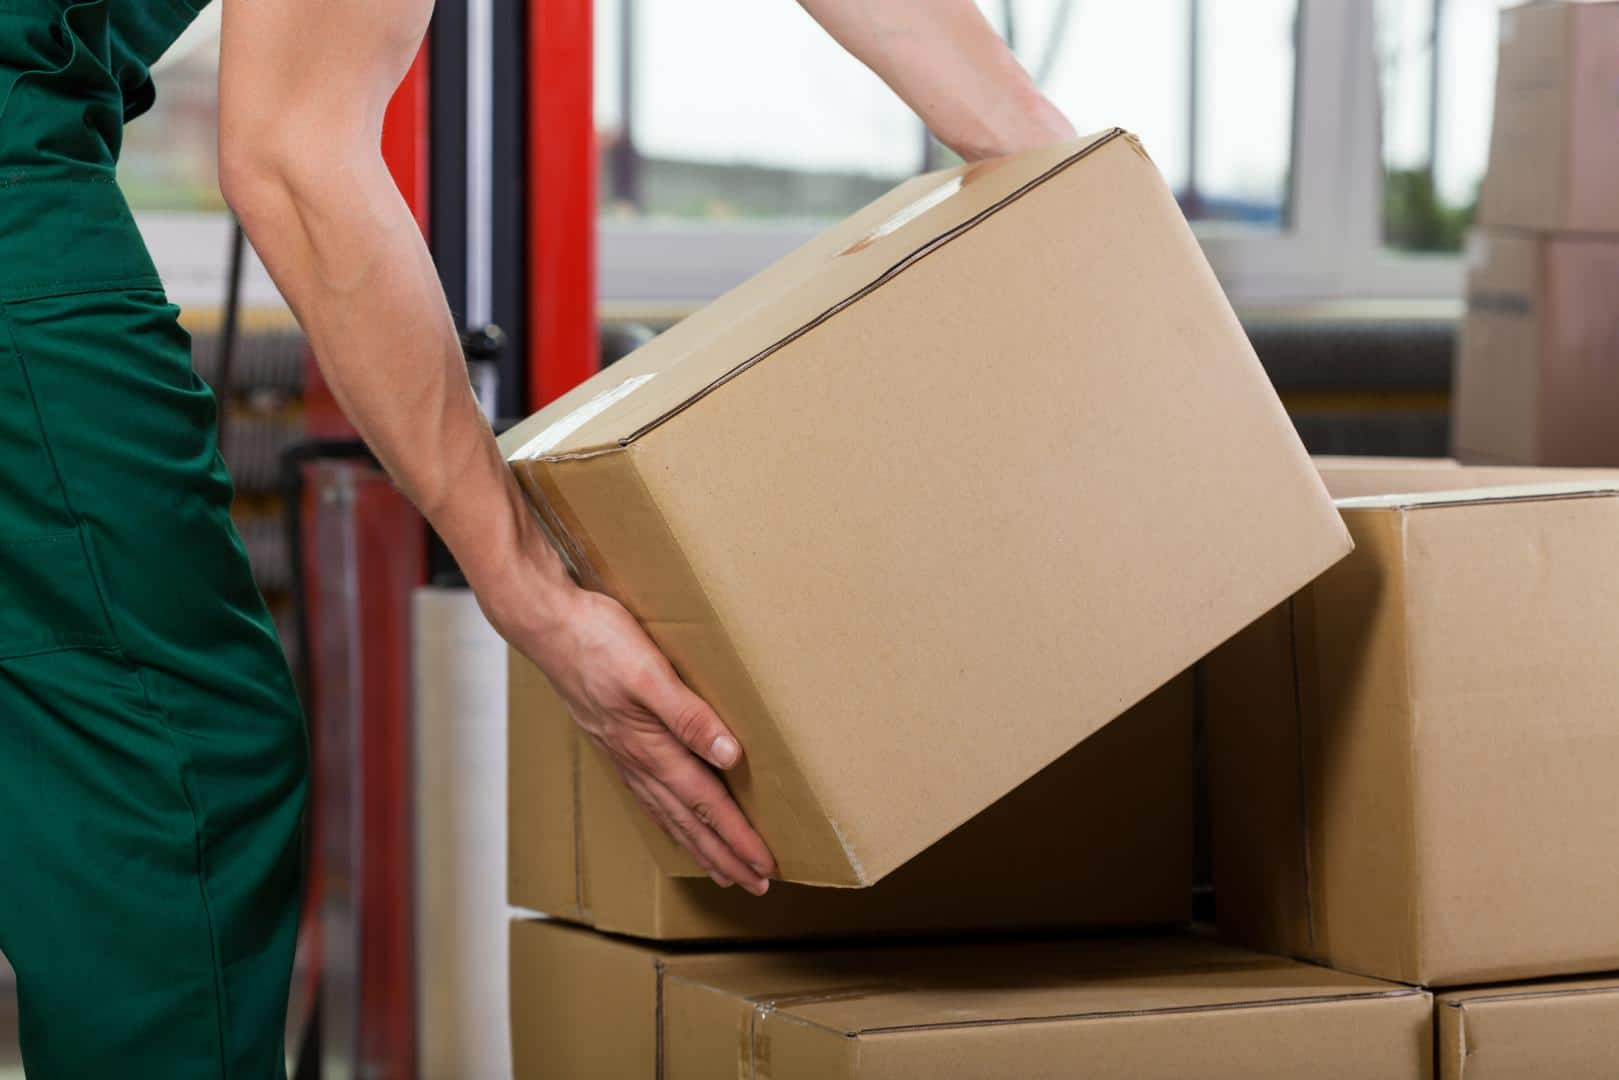 Discover The Credible Movers Company That Is Instrumental To Getting Best Results Here